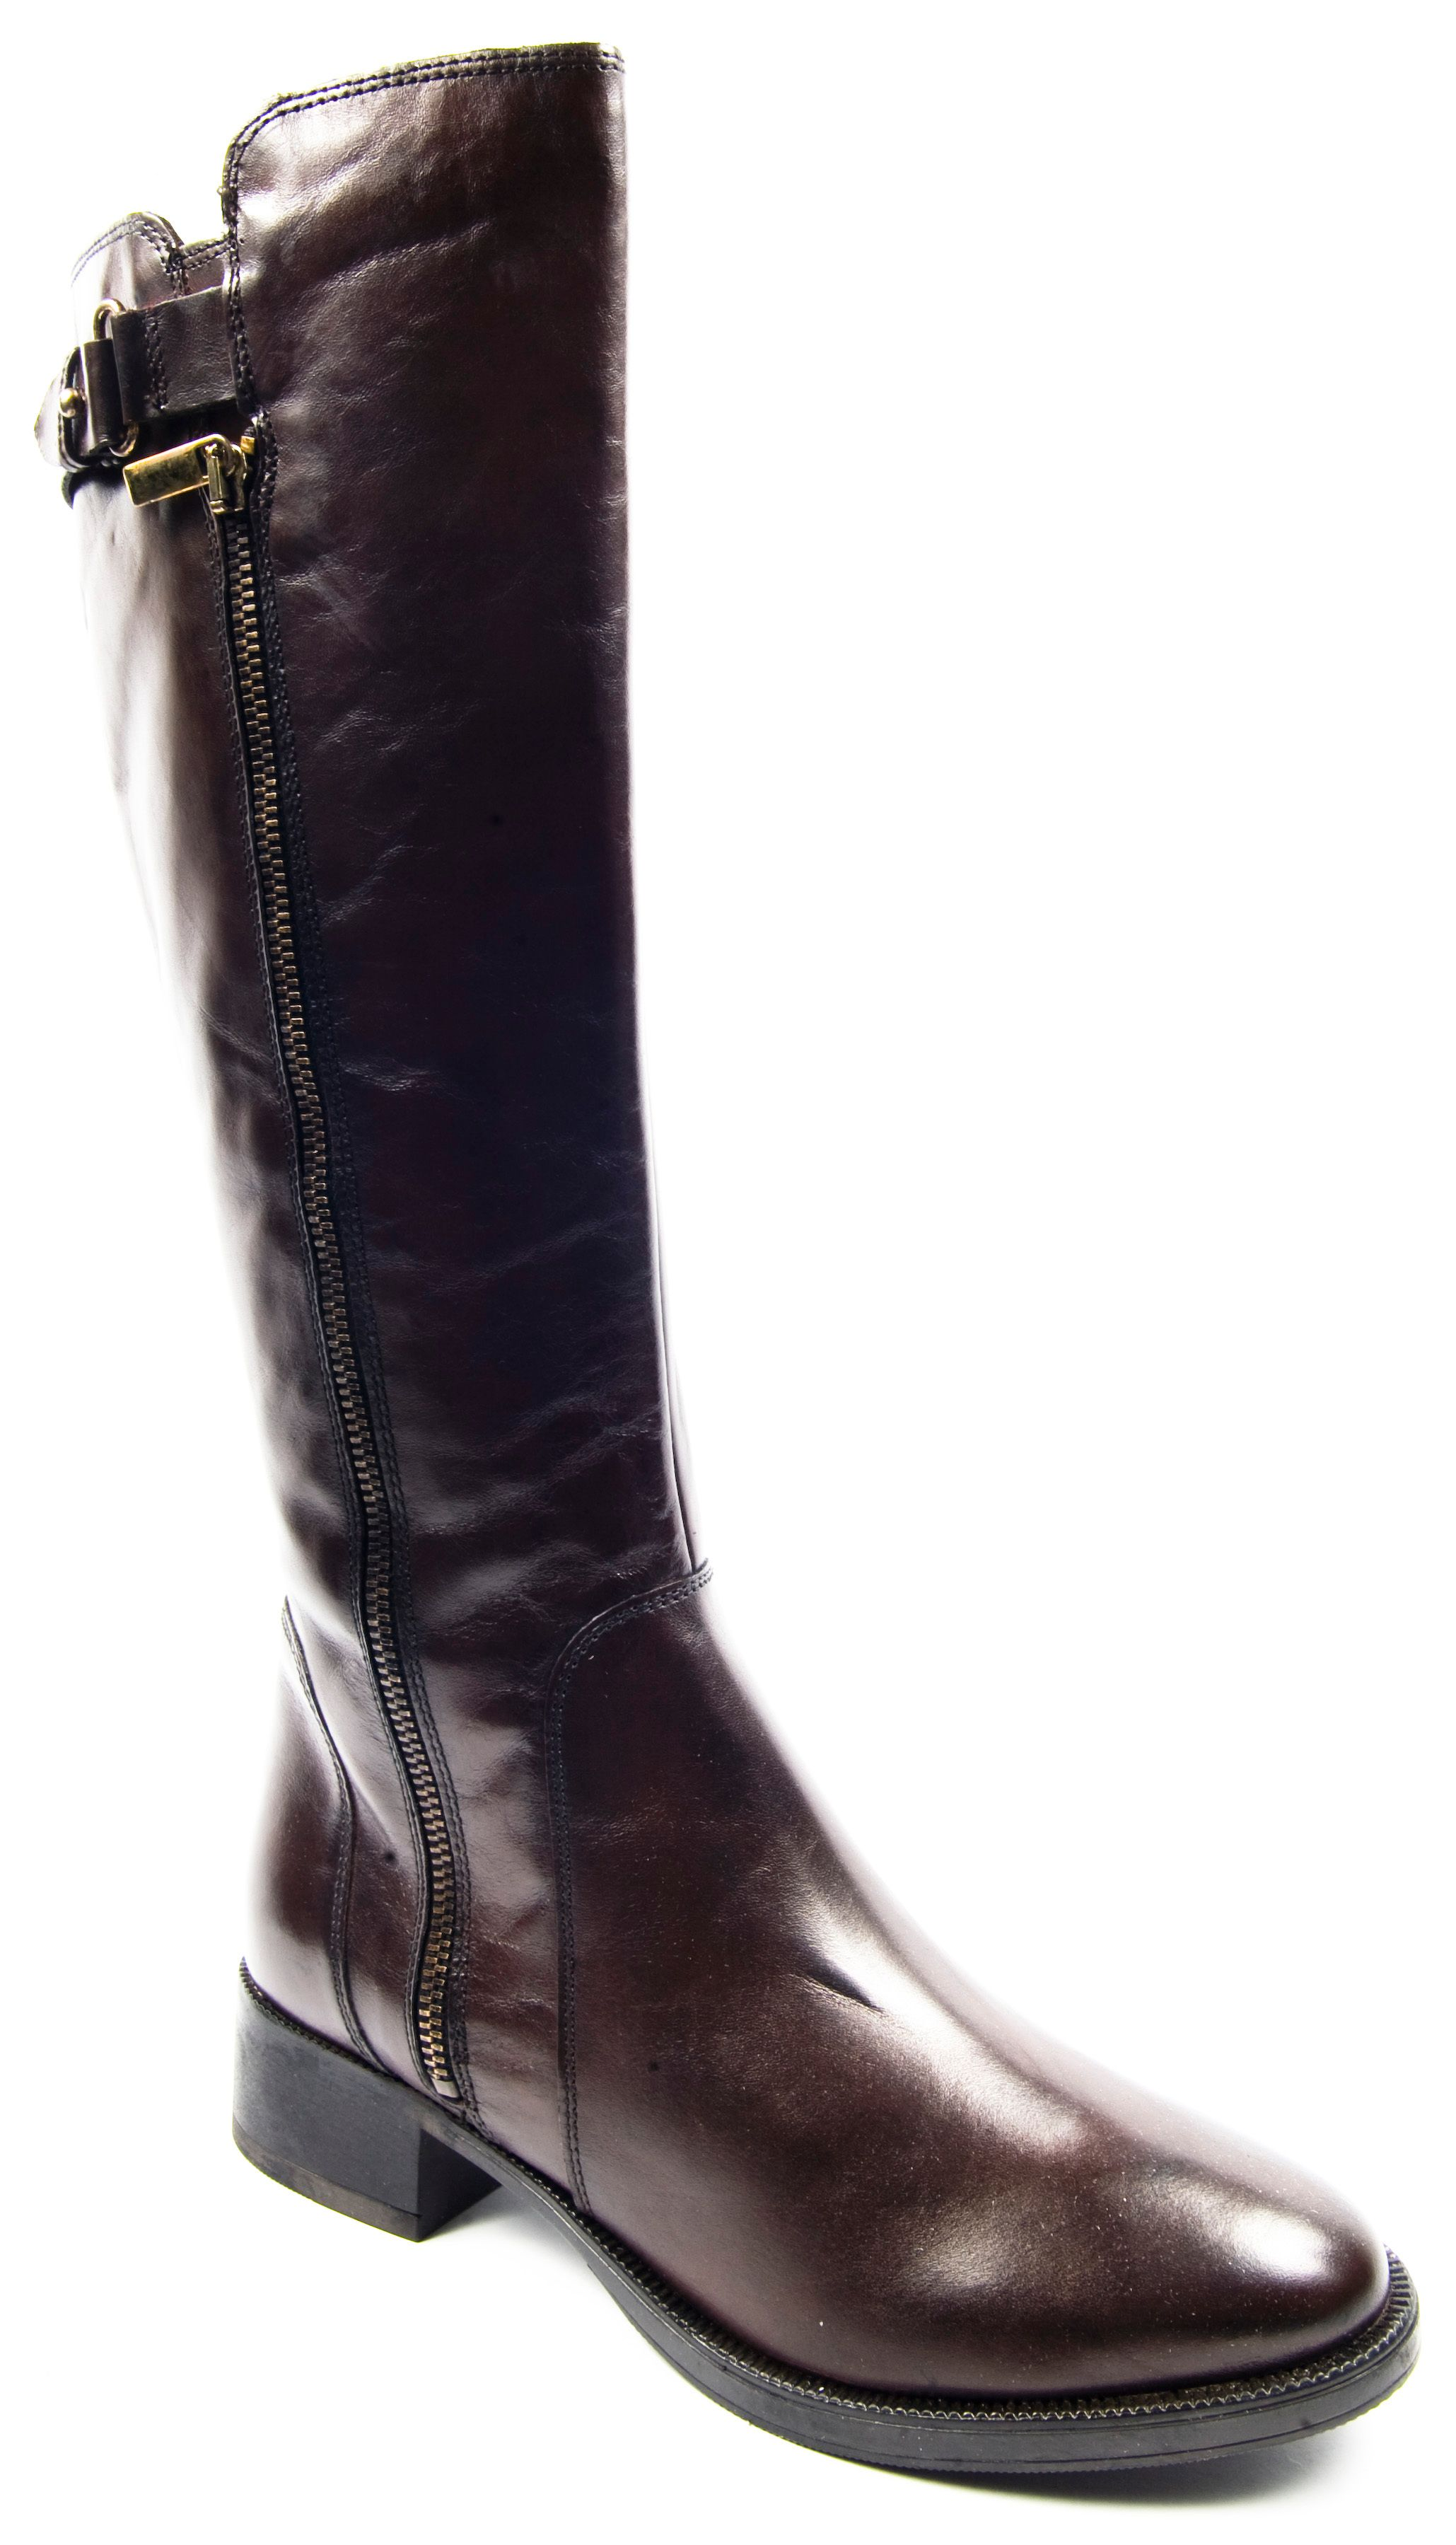 Paris long boots